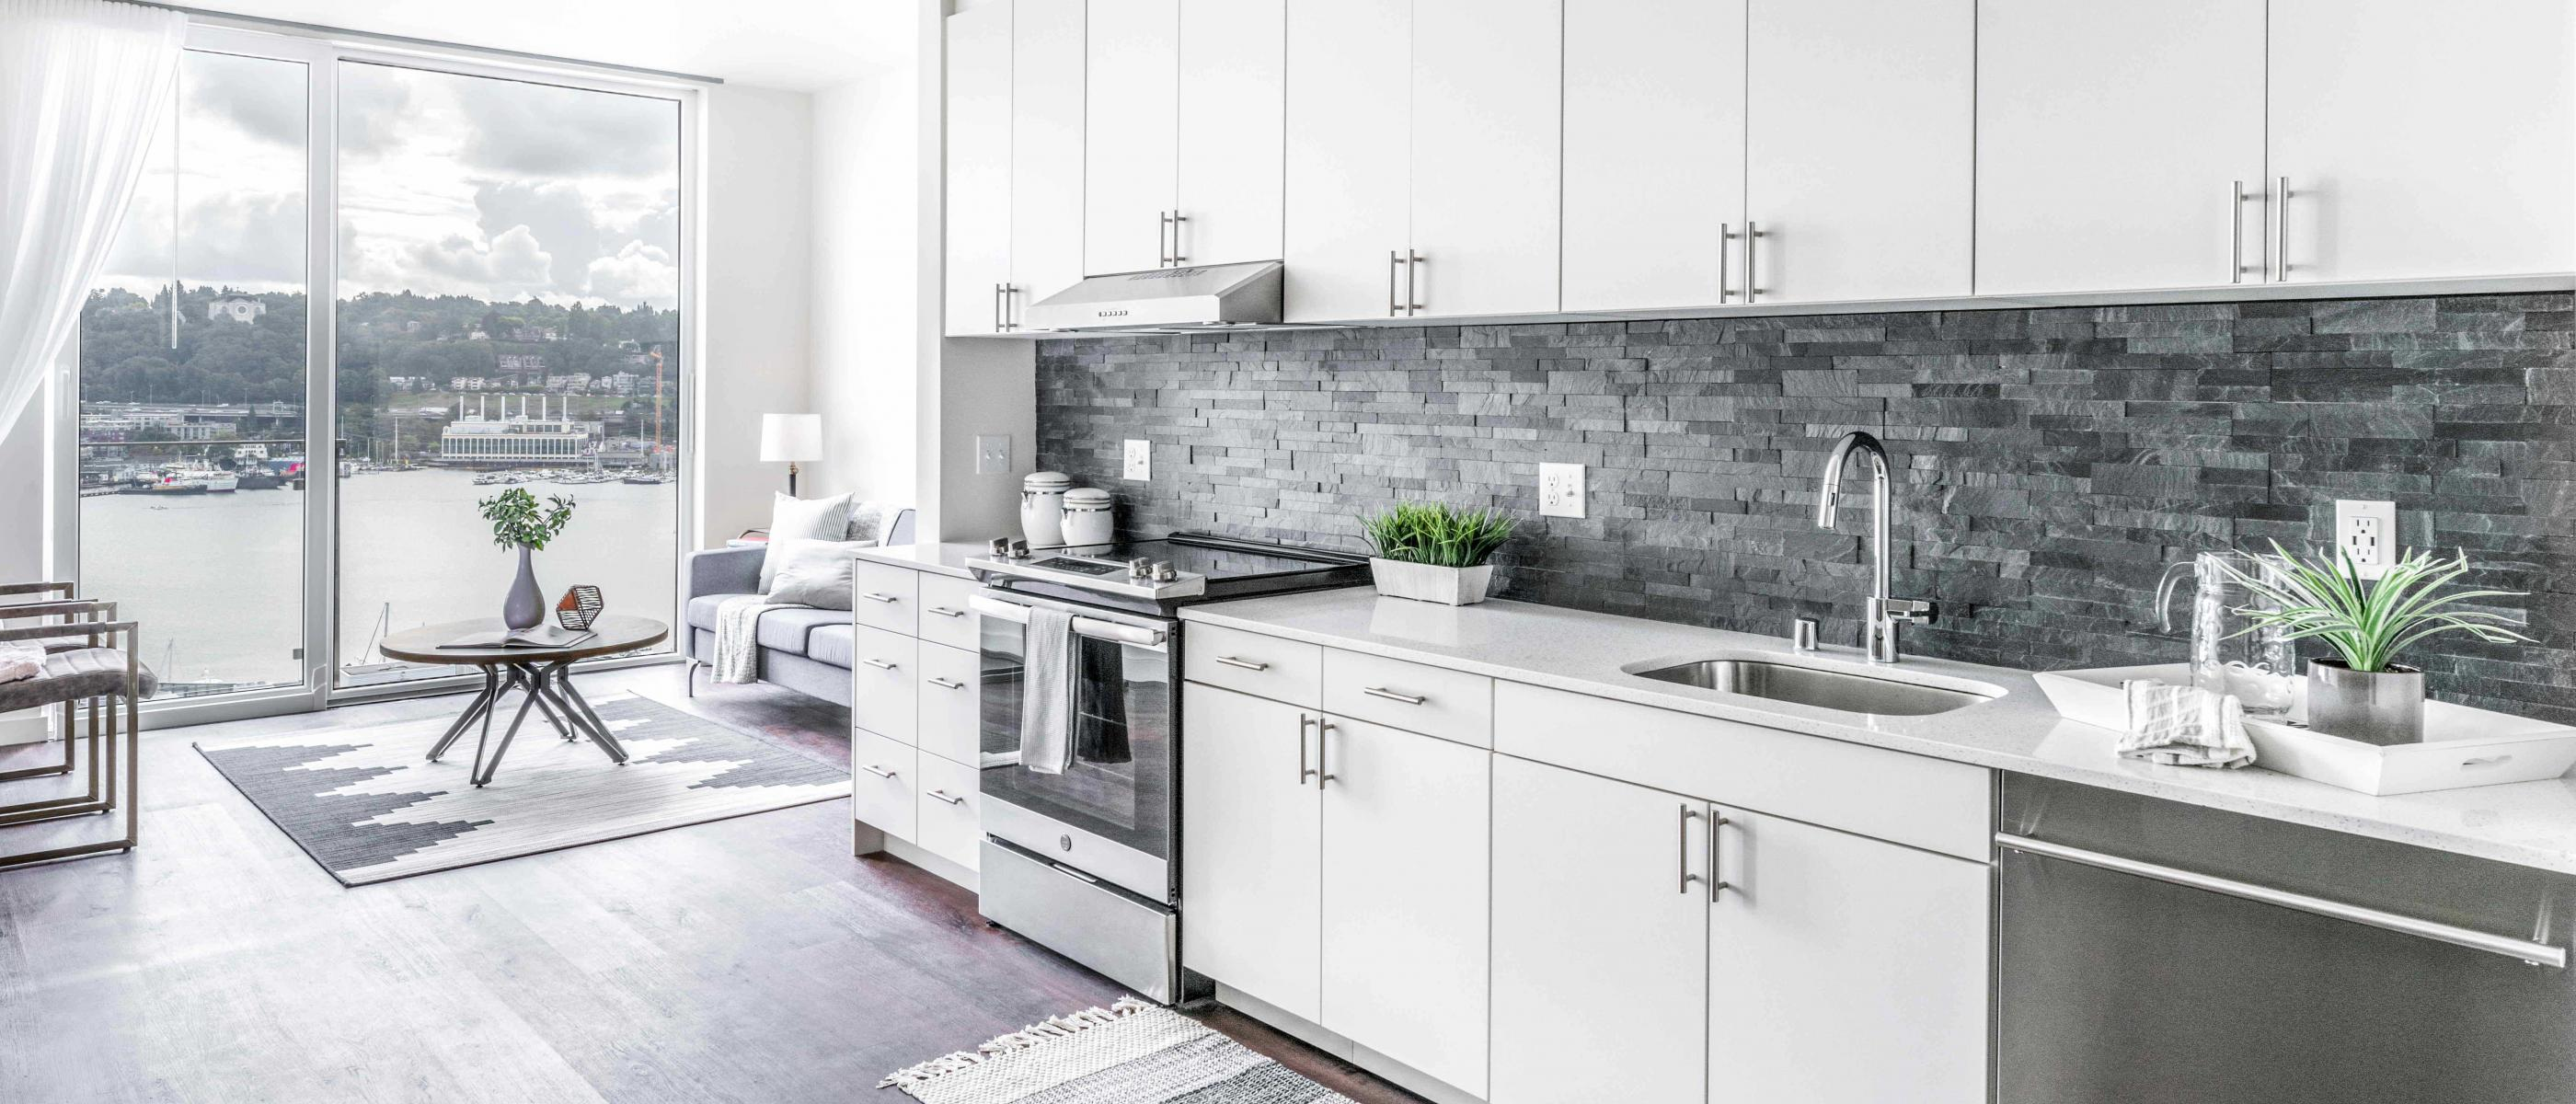 MULTIFAMILY CABINETS